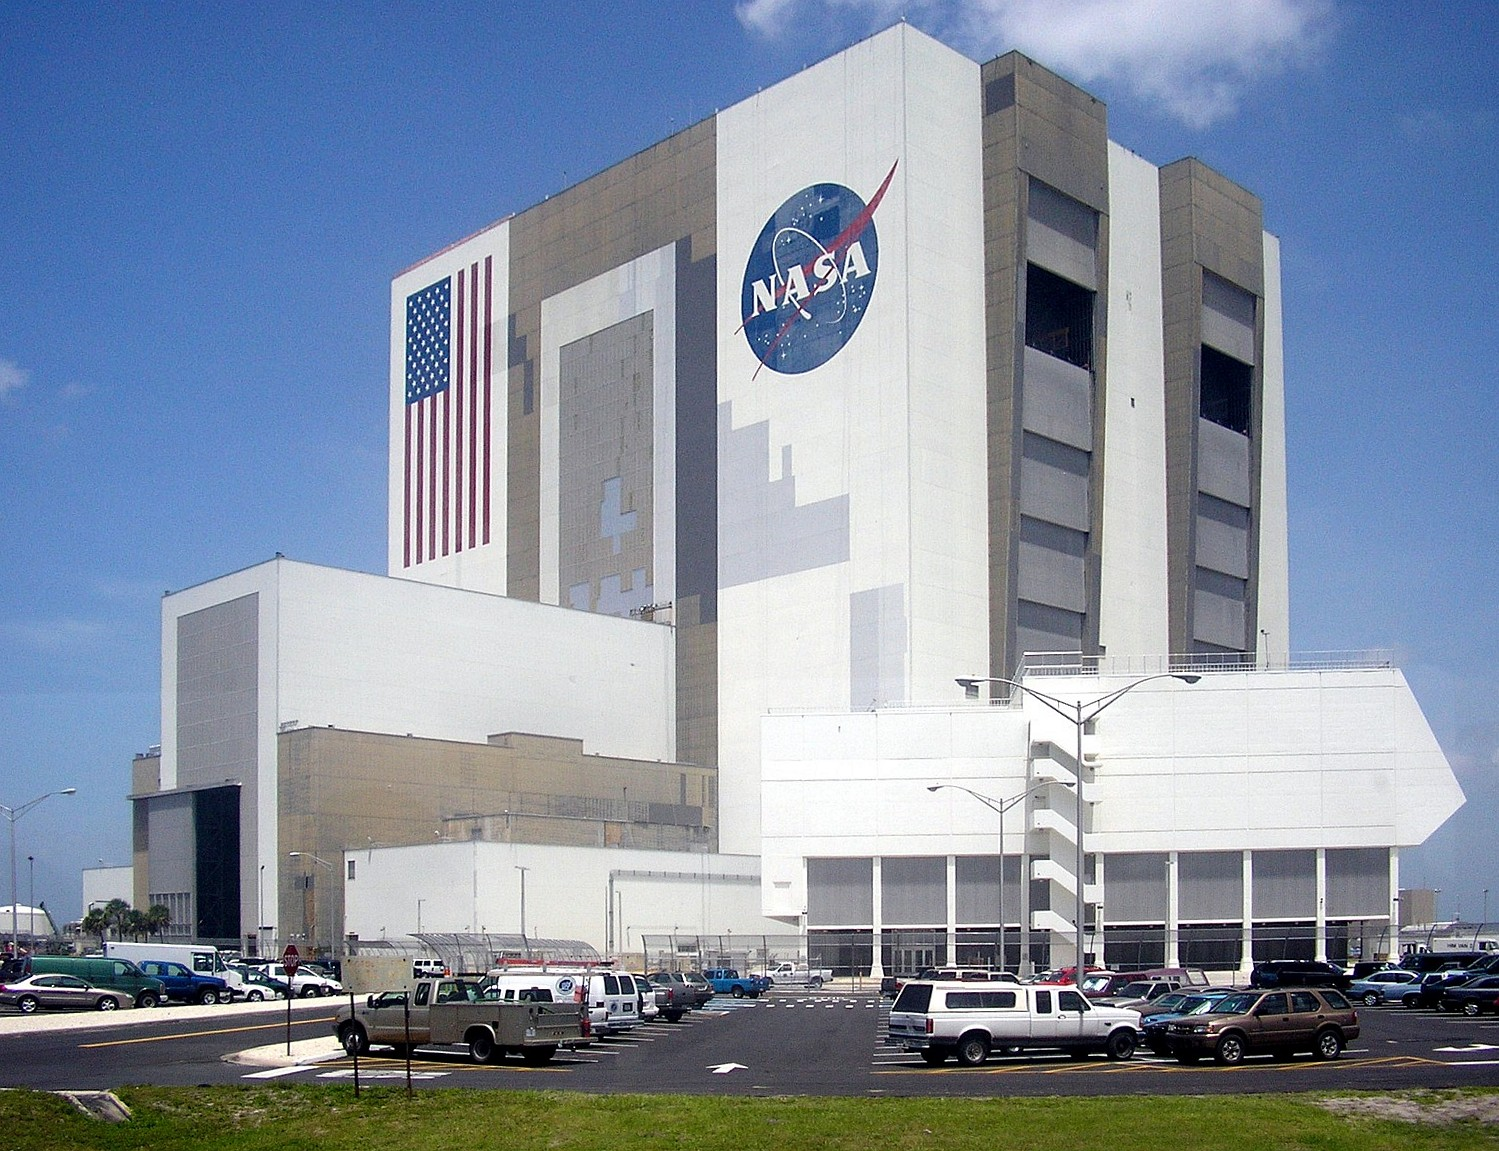 NASA Vehicle Assembly Building  Titusville Florida Atlas Obscura - Nasa museums in usa